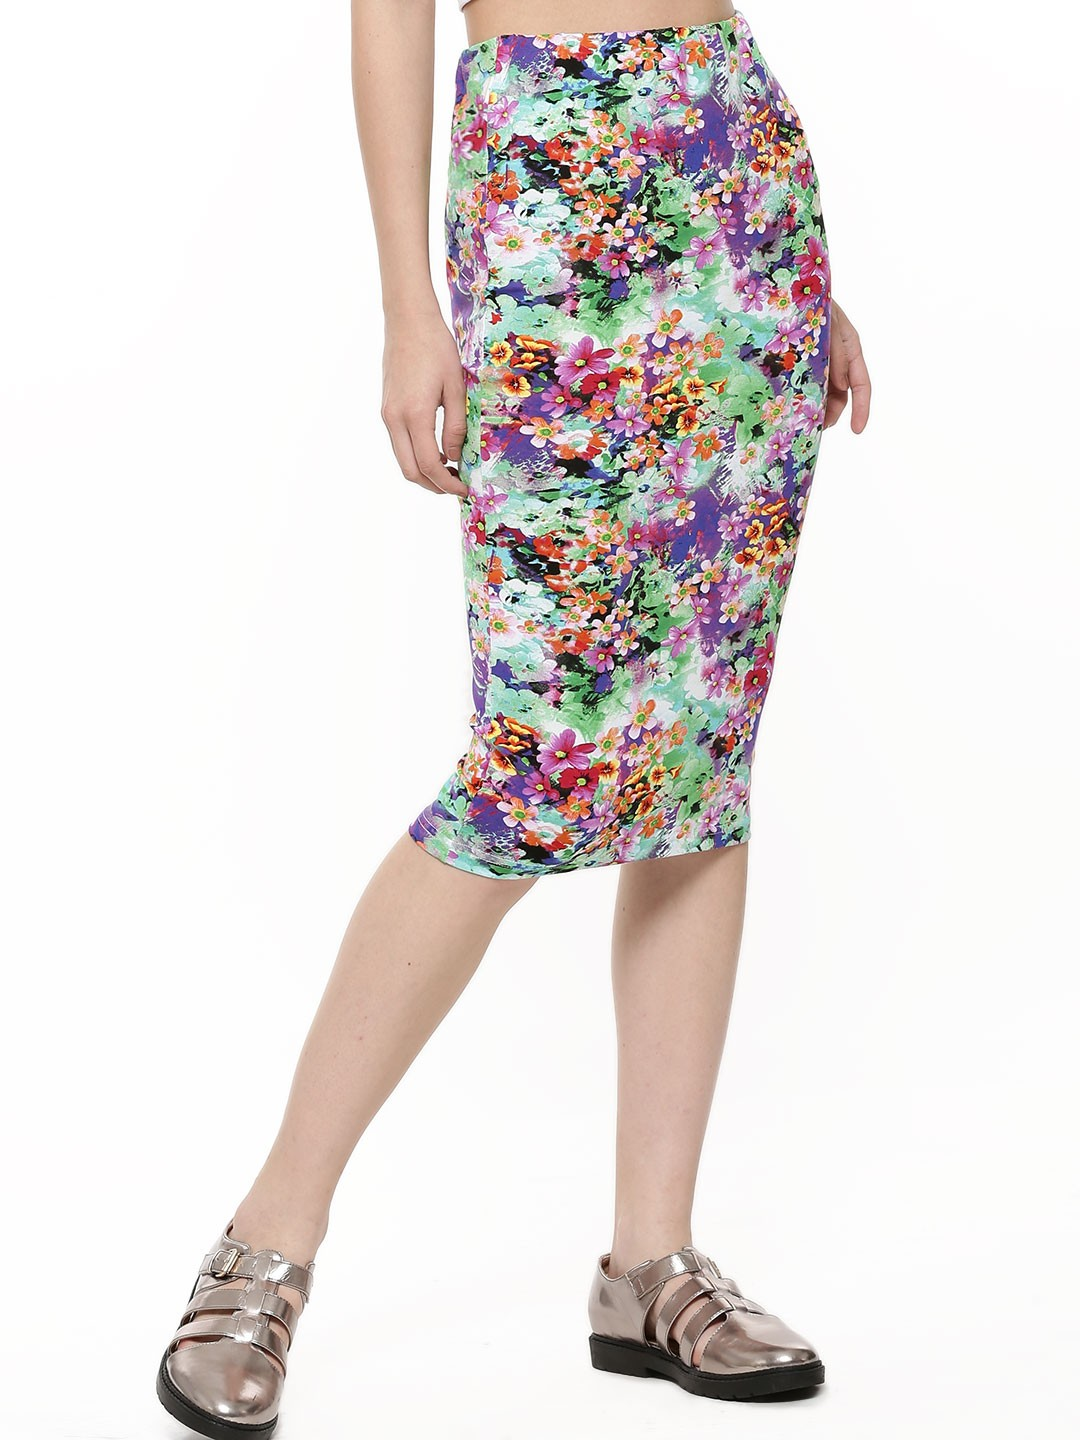 buy koovs bright floral pencil skirt for s